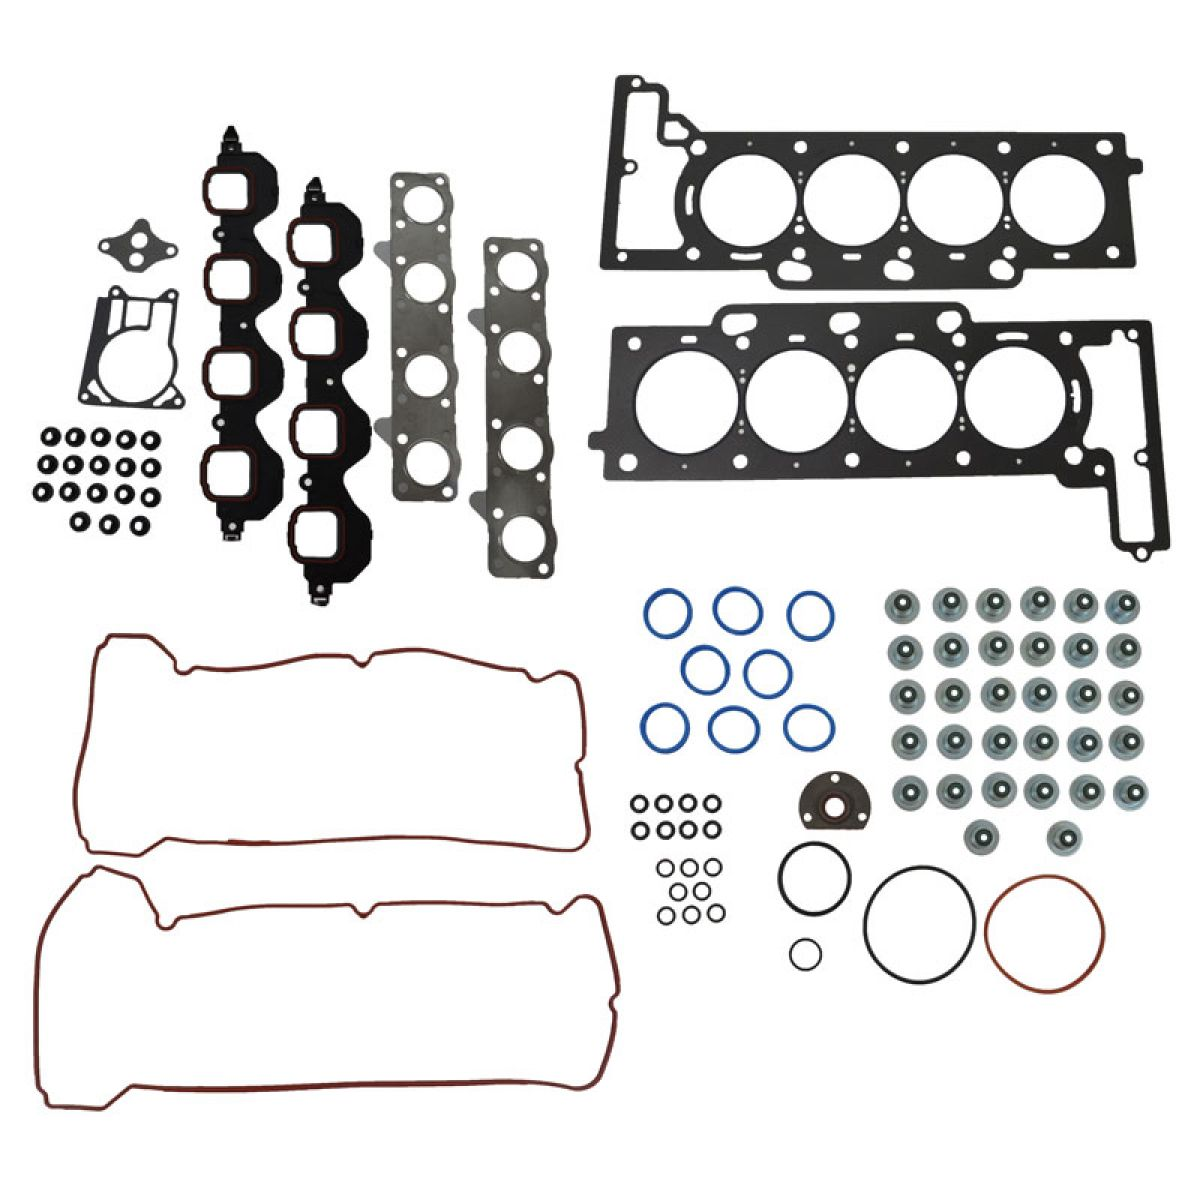 Engine Head Intake Exhaust Manifold Valve Cover Gasket Kit